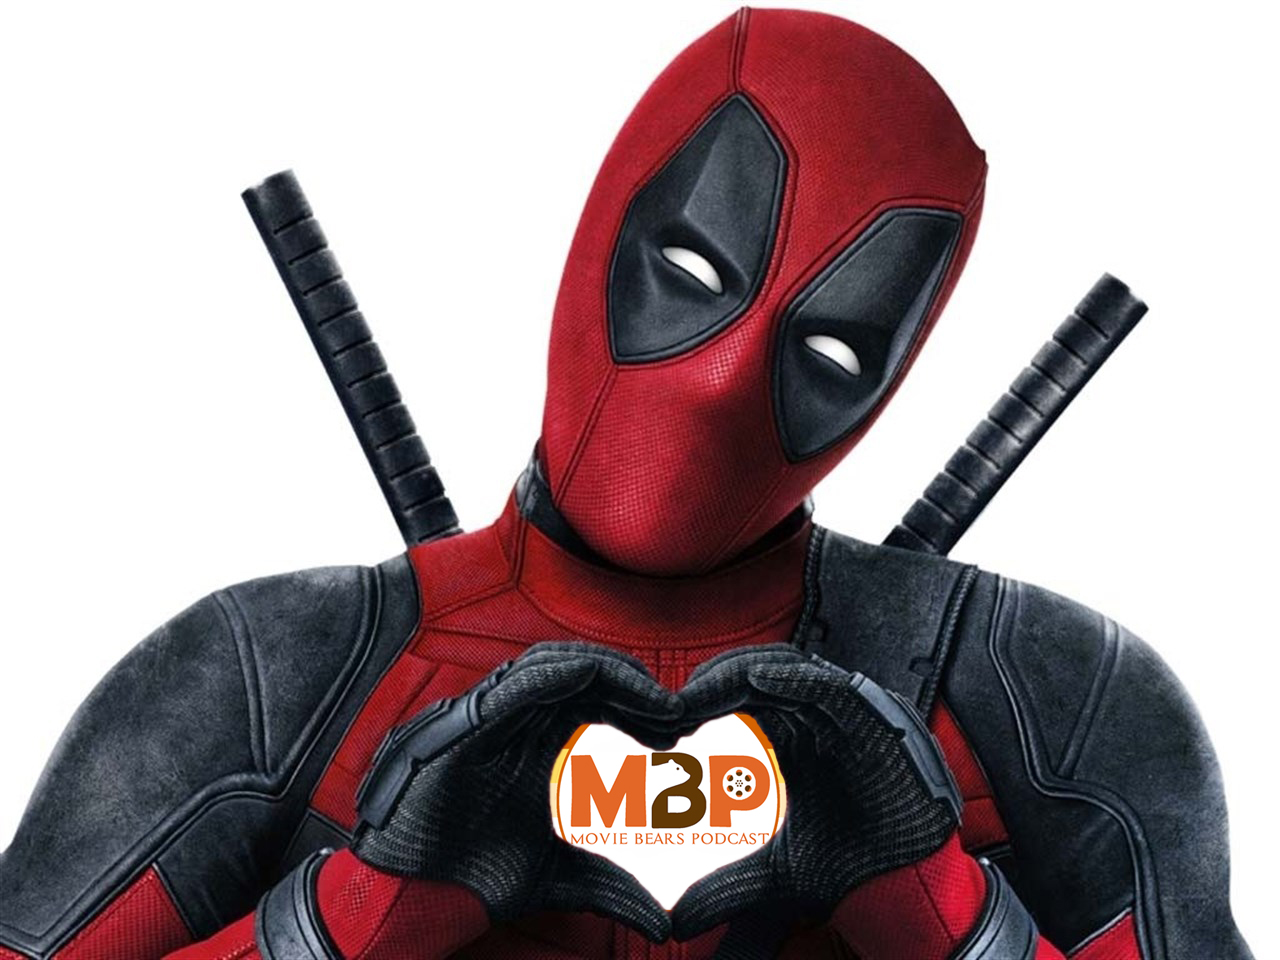 MBP e283 - 'Deadpool 2' (5/21/18)    We quite enjoyed the first 'Deadpool' movie, finding its blend of irreverent humor, R-Rated content, and subversion of the superhero genre to be a fun and refreshing departure from the typical action-adventure blockbuster. But now that the sequel, 'Deadpool 2,' is out... how does it stack out? We're joined by Bill Zanowitz of the Comic Book Bears Podcast for our review/discussion!